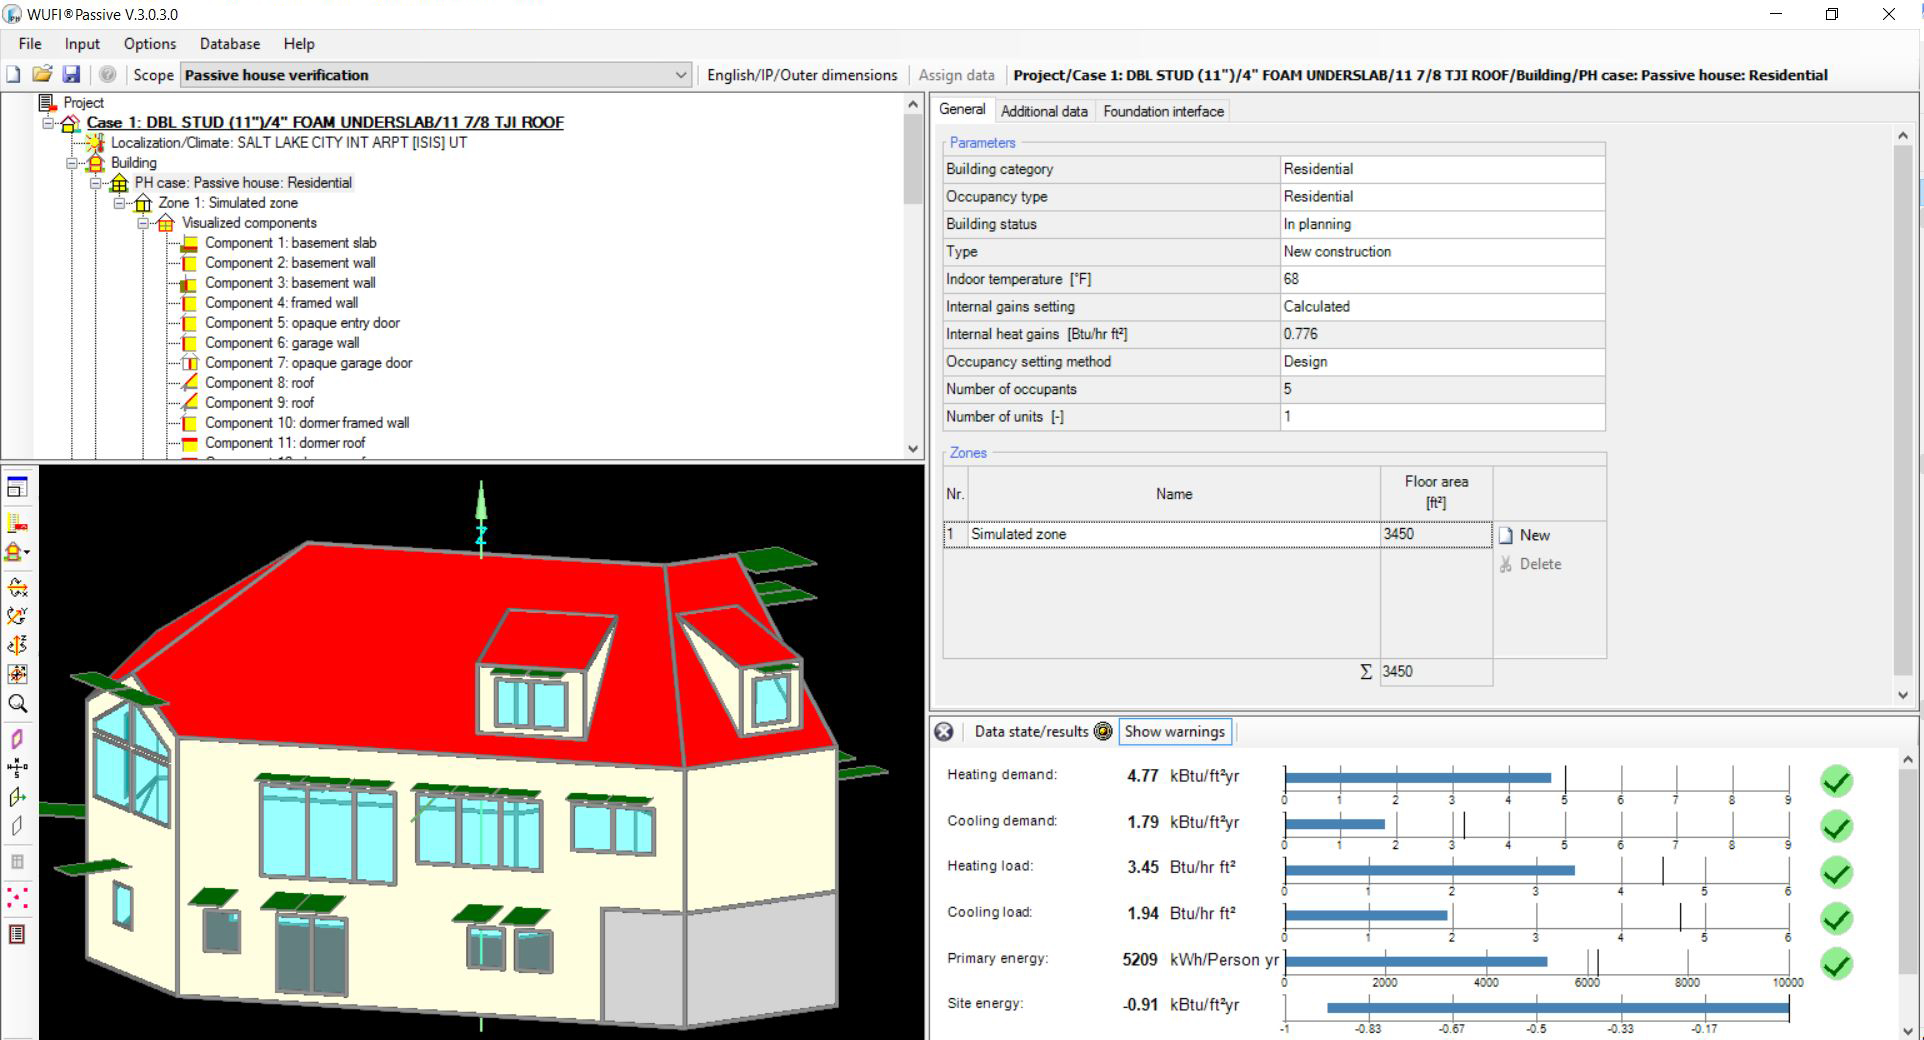 Energy modeling software: WUFI 3.0